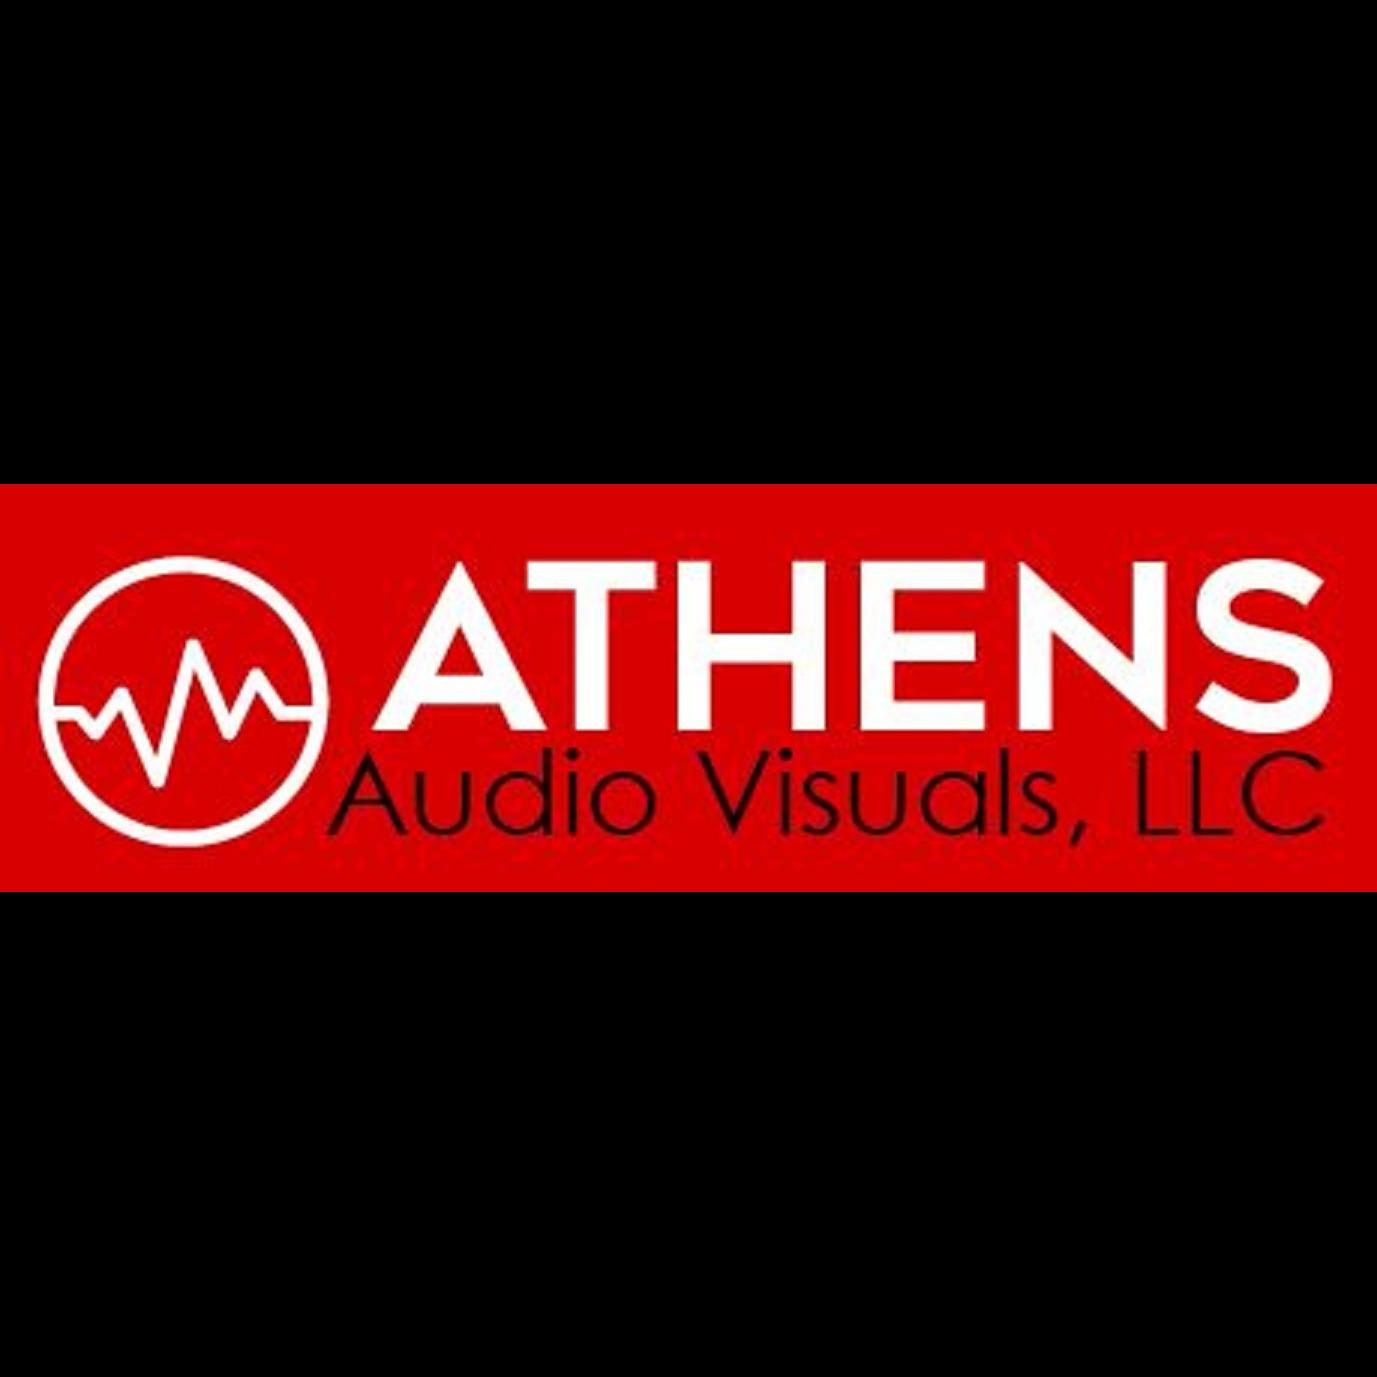 Athens Audio Visuals, LLC